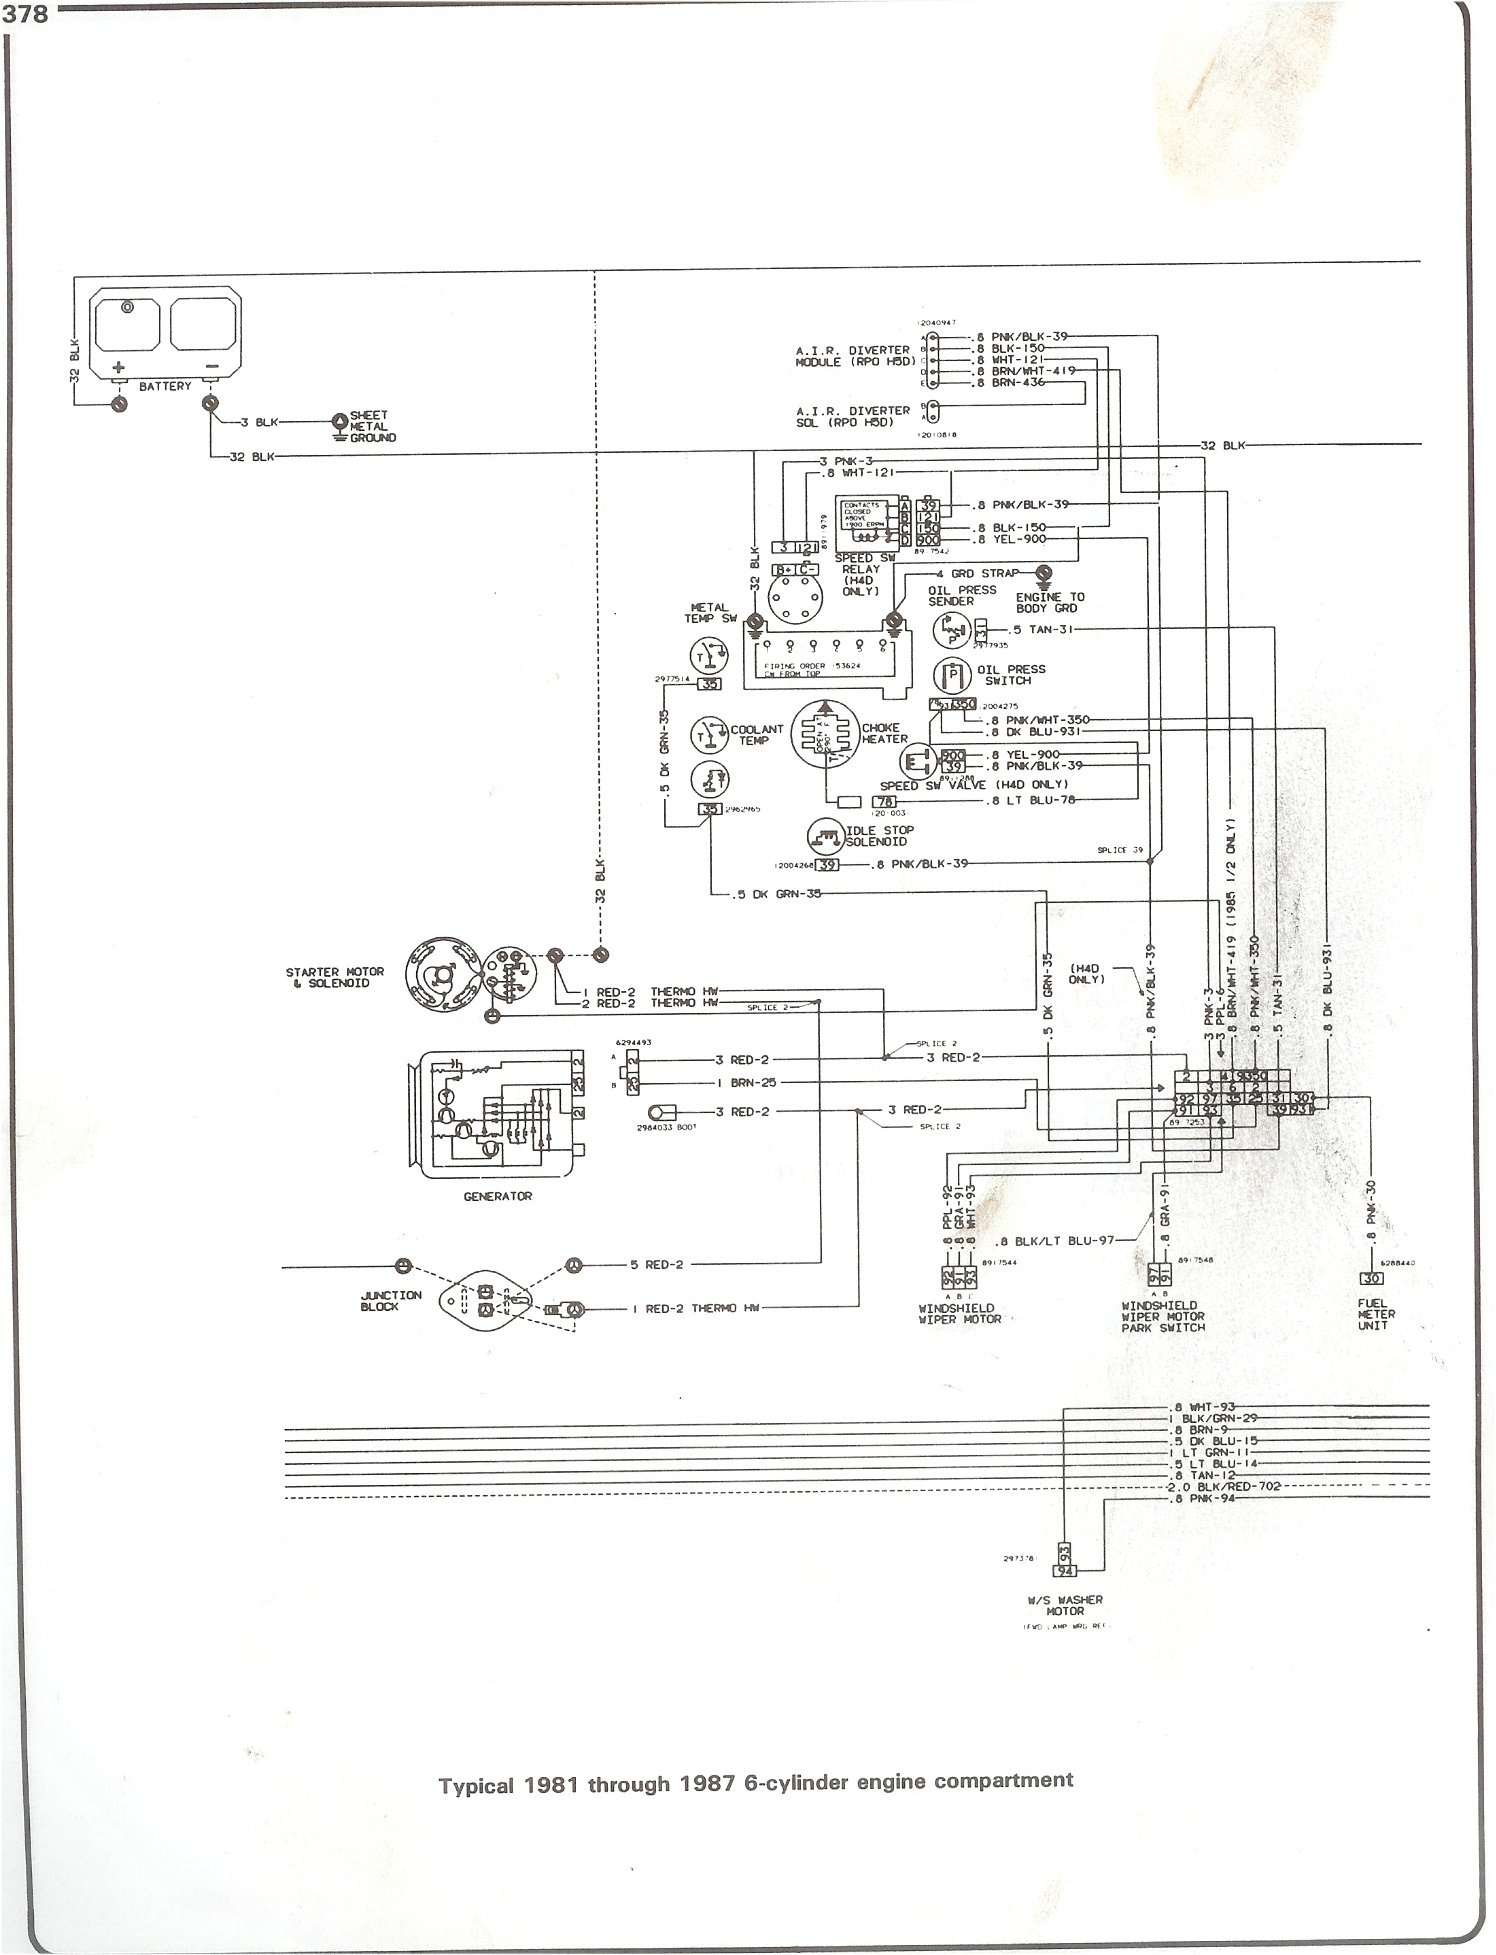 Impala Starter Wiring Diagram on 1970 impala fuel gauge, 1970 impala frame, 1970 mustang fuse box diagram, 1970 impala exhaust diagram, 1967 impala wiper motor diagram, 1970 impala suspension diagram, 1970 chevelle heating diagram, 1970 chevelle fuse block diagram, 1970 impala wiper motor, 1970 impala tachometer, 1970 impala engine, 1970 impala brochure,